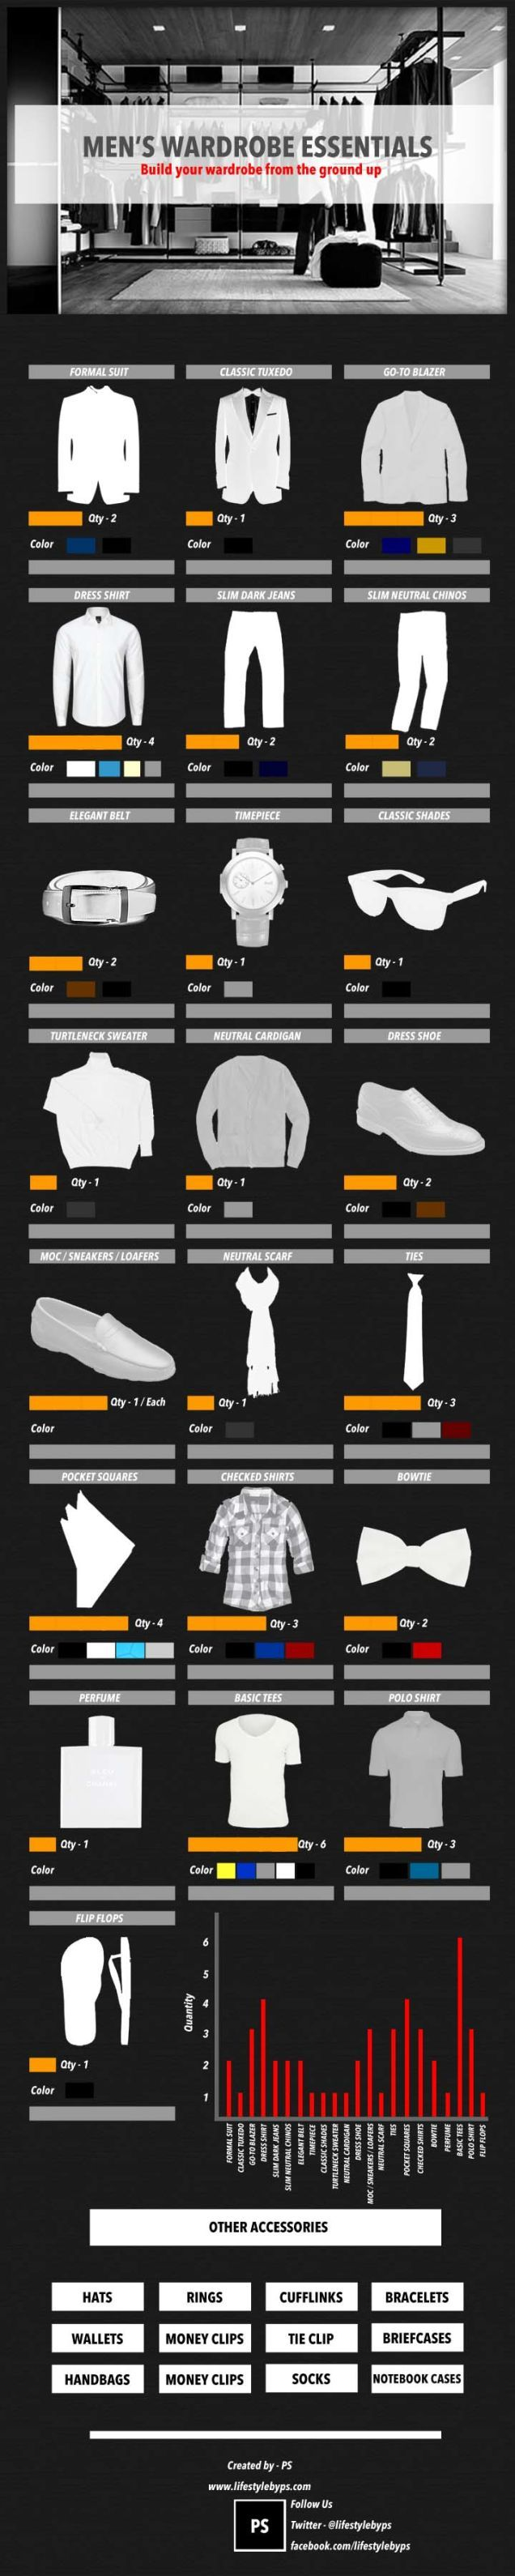 Thank God! Finally a guide I can follow.   Create a Minimalist Wardrobe with These Essential Clothing Items